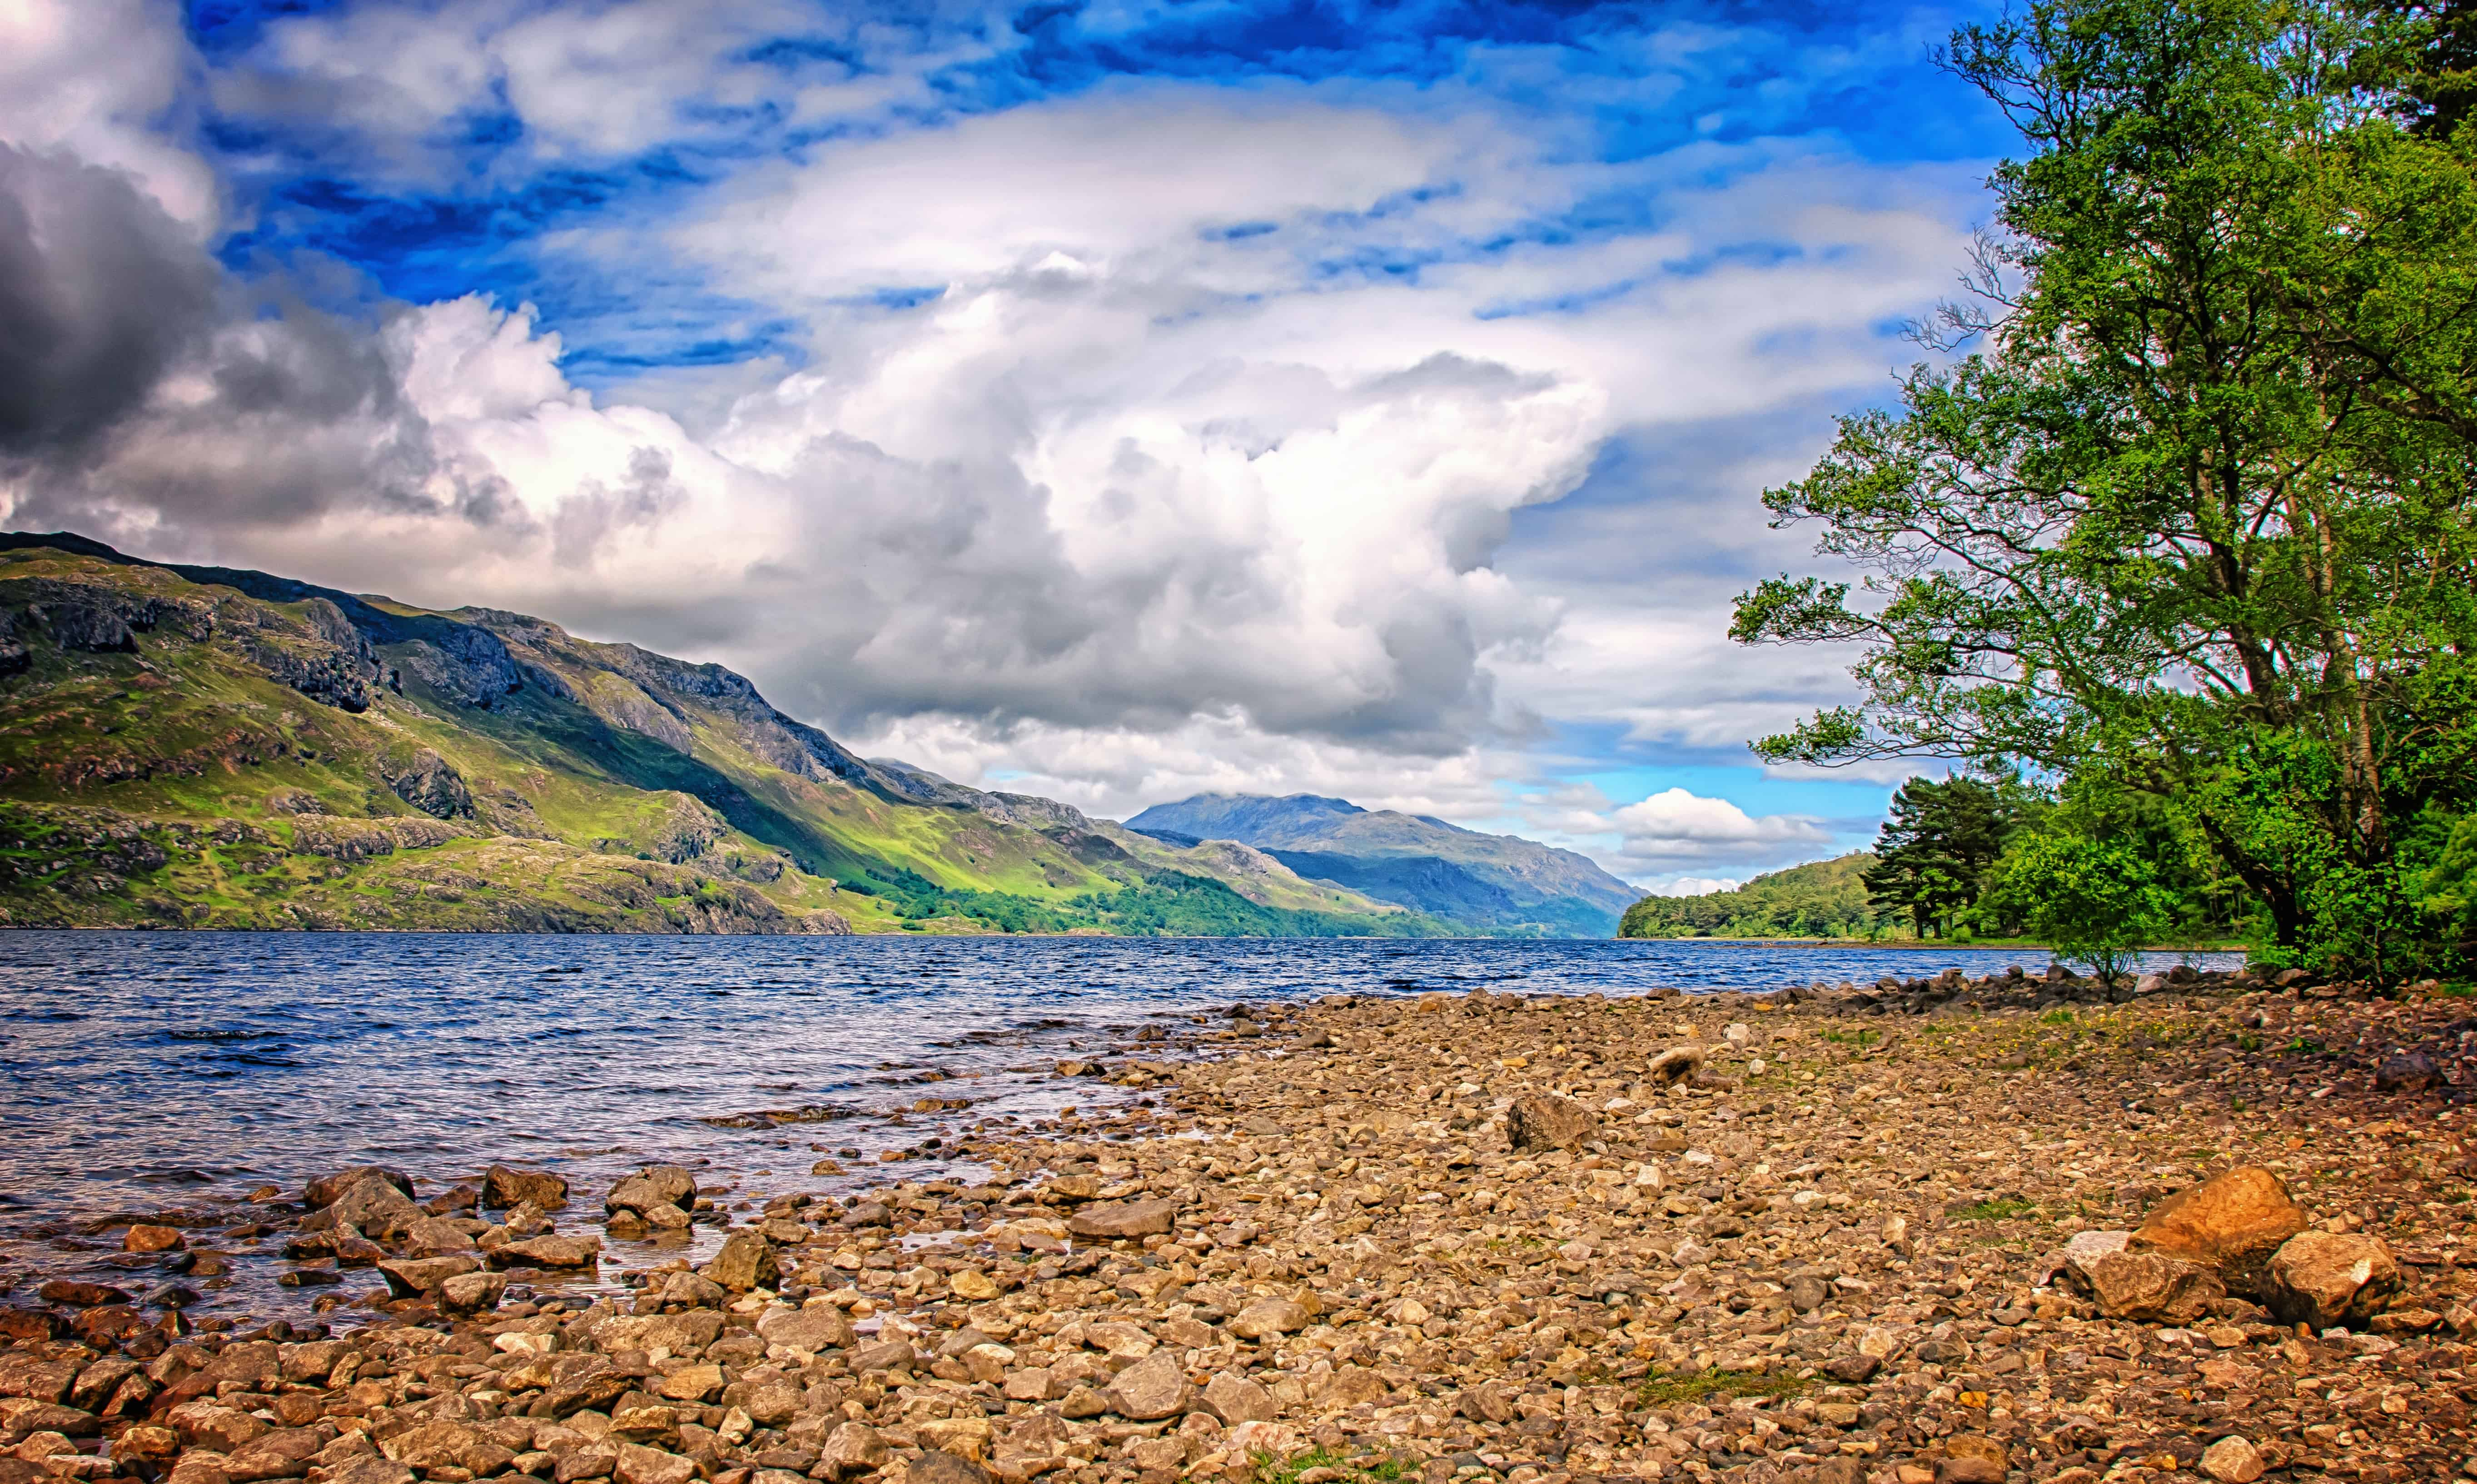 landscape, water, river, nature, mountain, sky, outdoor, coast